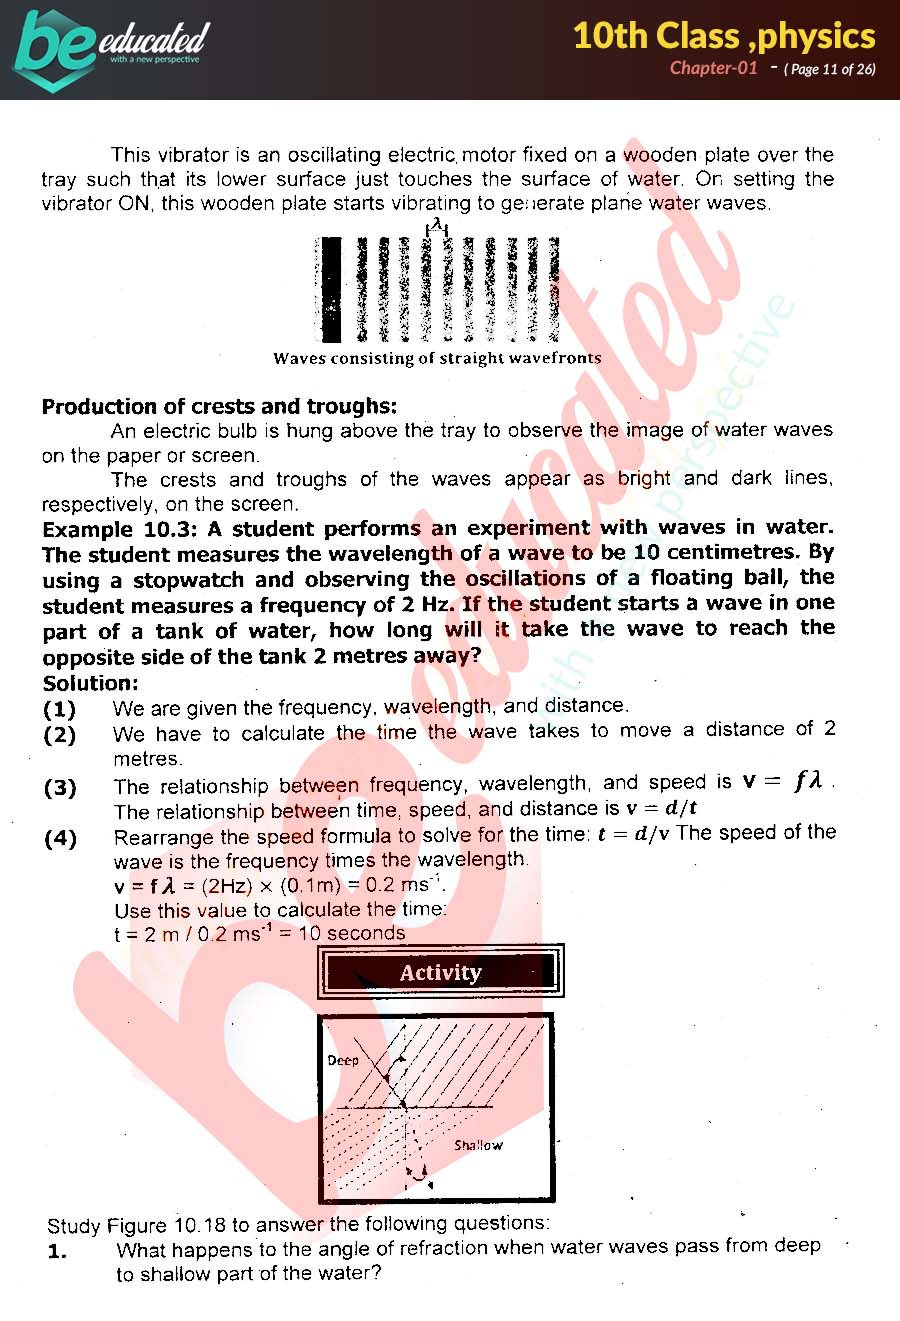 Chapter 1 Physics 10th Class Notes - Matric Part 2 Notes